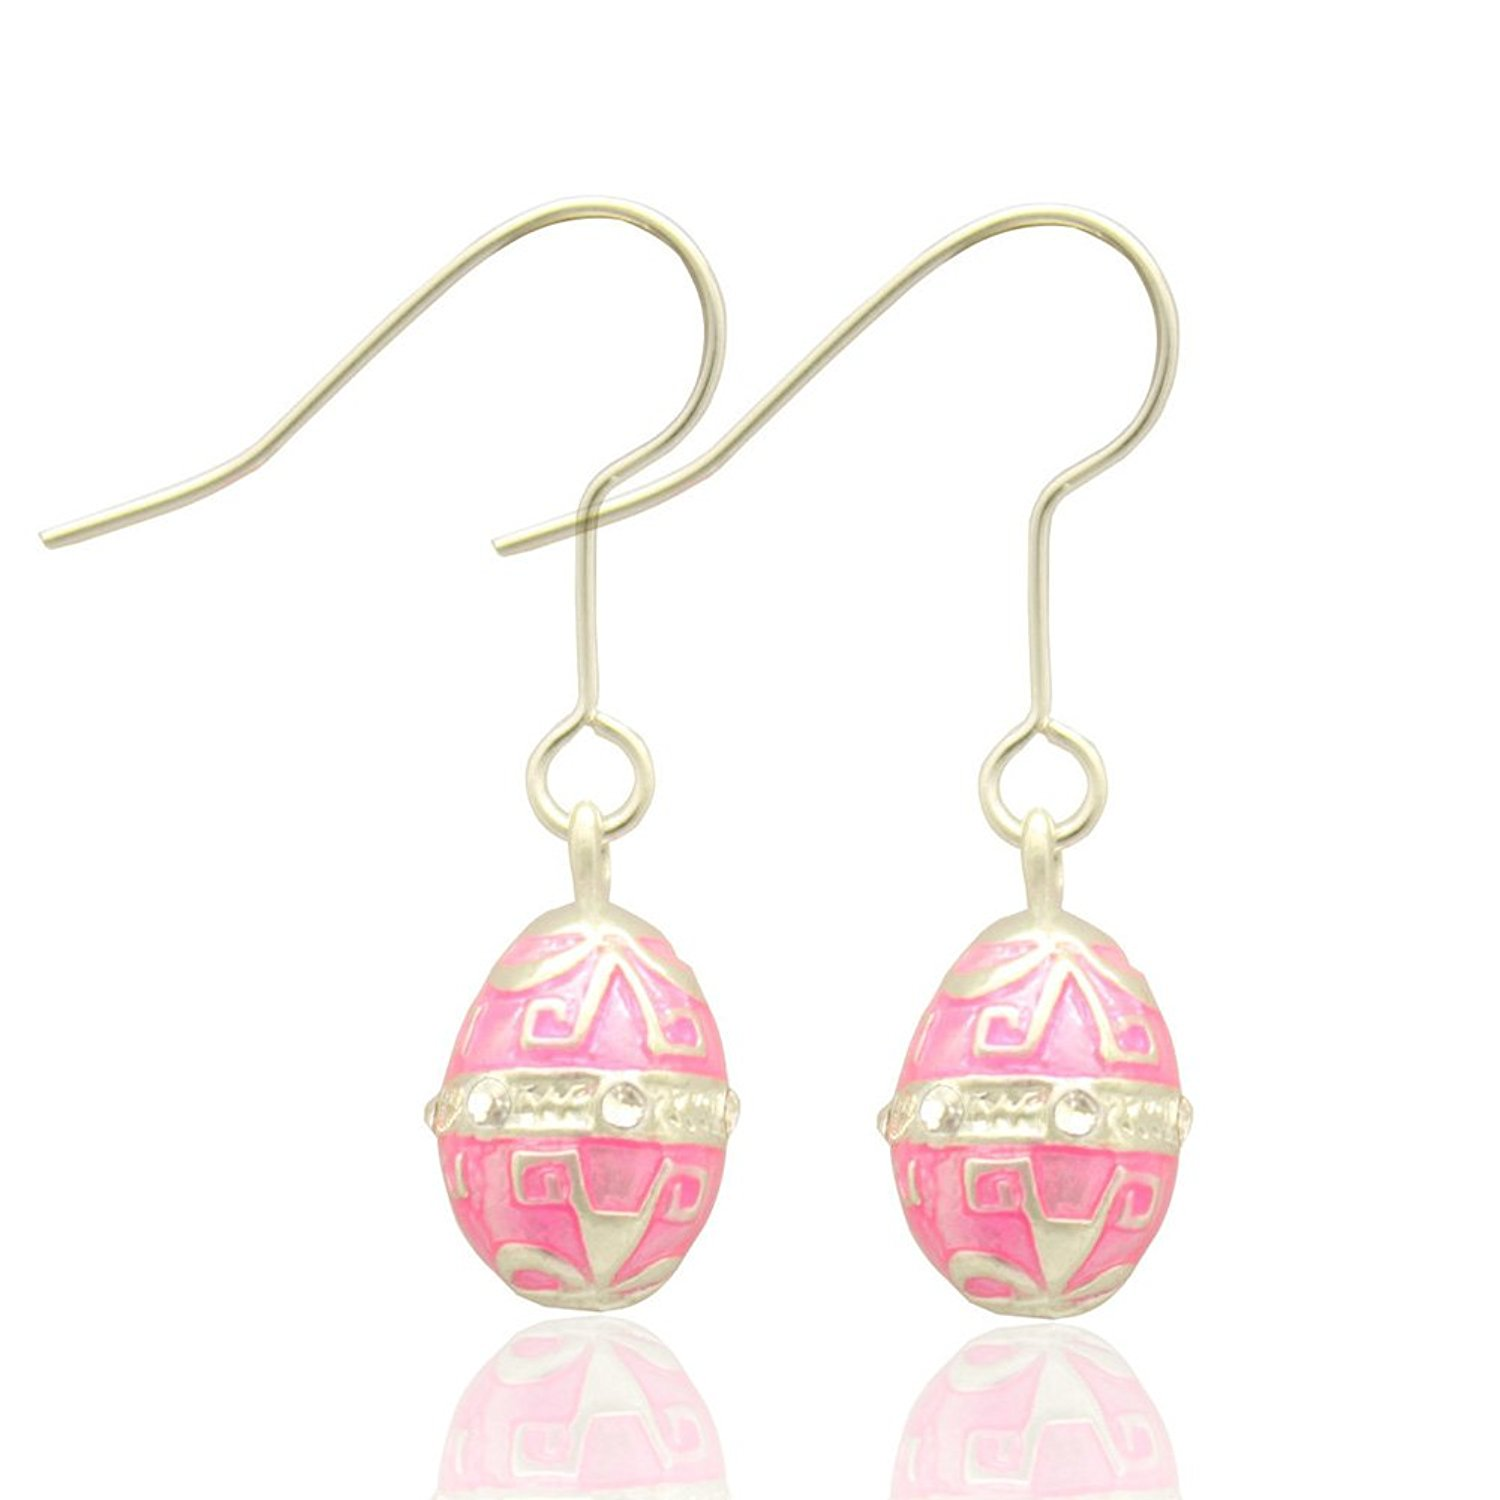 MYD Jewelry Multicolor Enameled Faberge Egg Easter Egg Drop Earrings and Pendant Necklace Sets for Ladies